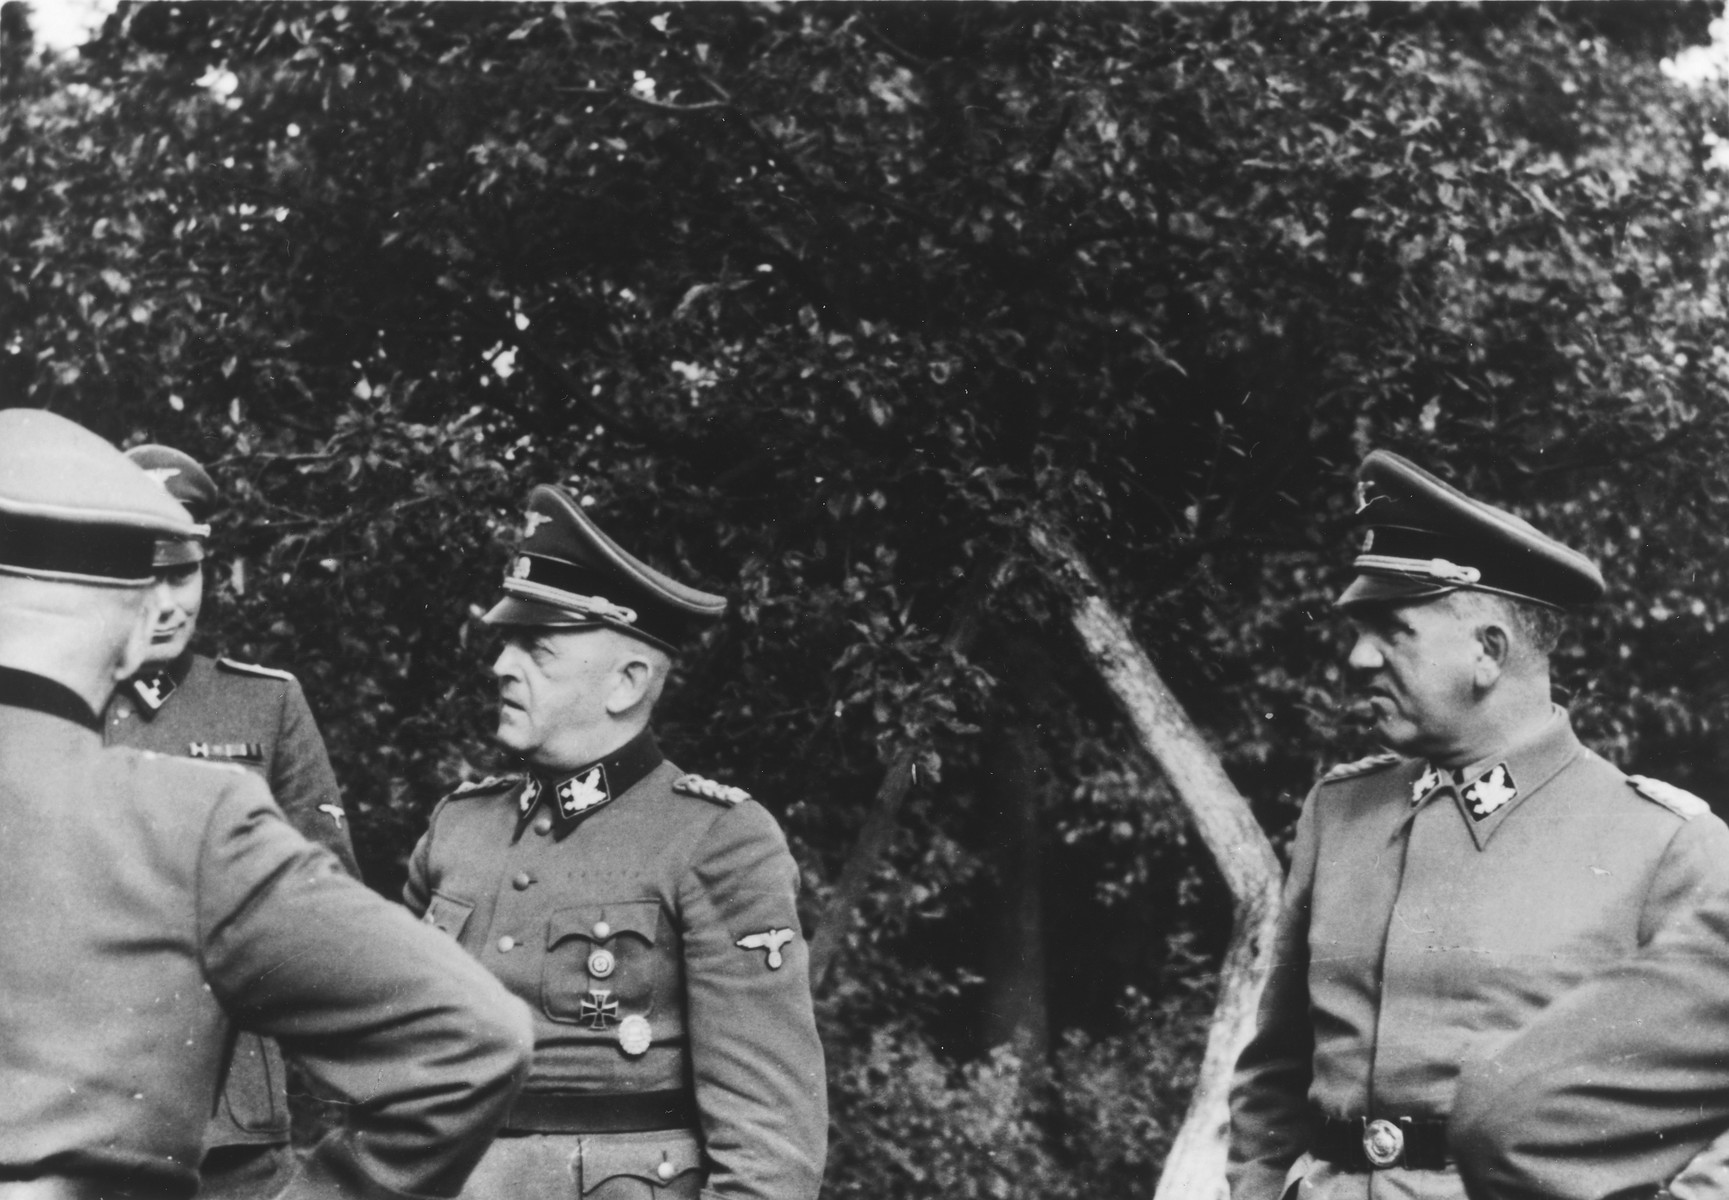 """SS officers Oswald Pohl (left) and Ernst Schmauser (center) visit Auschwitz.  Josef Kramer is pictured on the far left partially obscured.  The original caption reads: """"SS Ogrupf. Pohl and Schmauser in Auschwitz, 1944."""""""